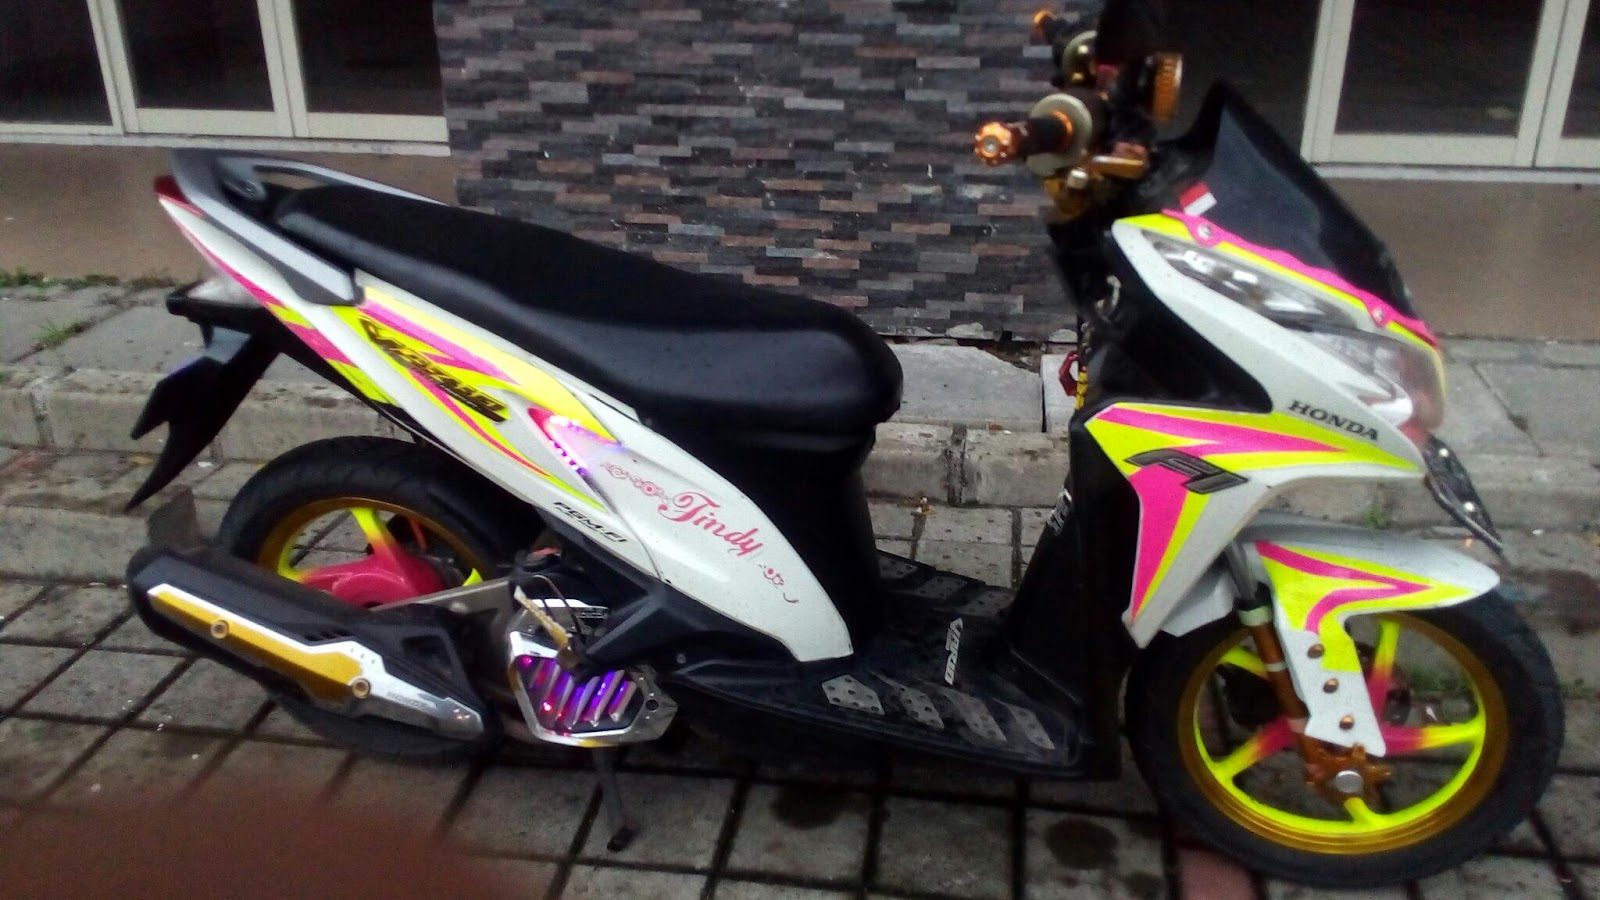 Modifikasi Vario 125 Modifikasi Vario 125